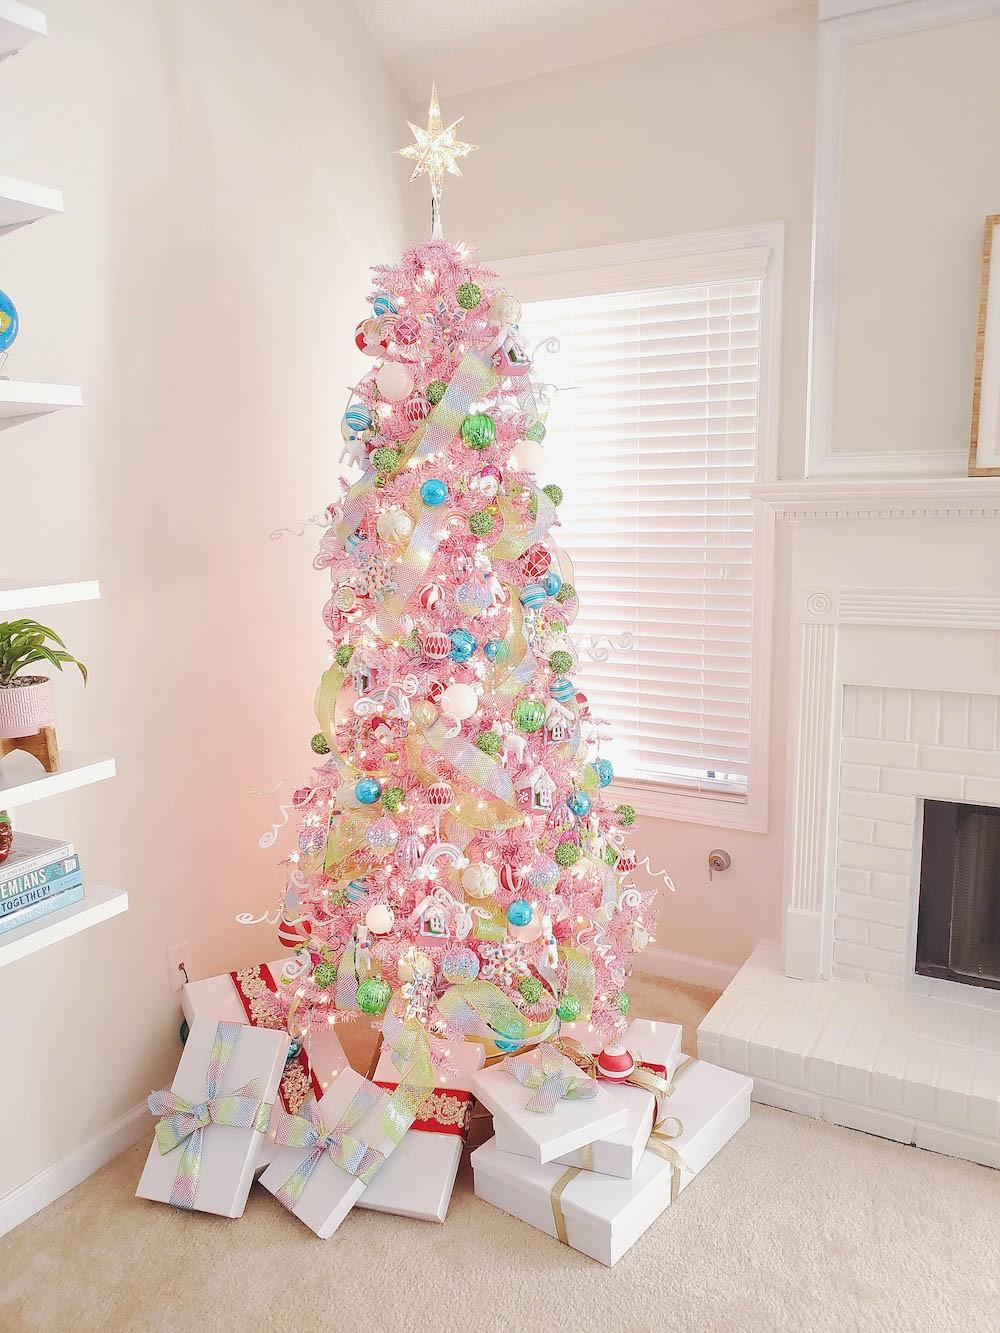 Blending Traditional Christmas with Whimsical Style